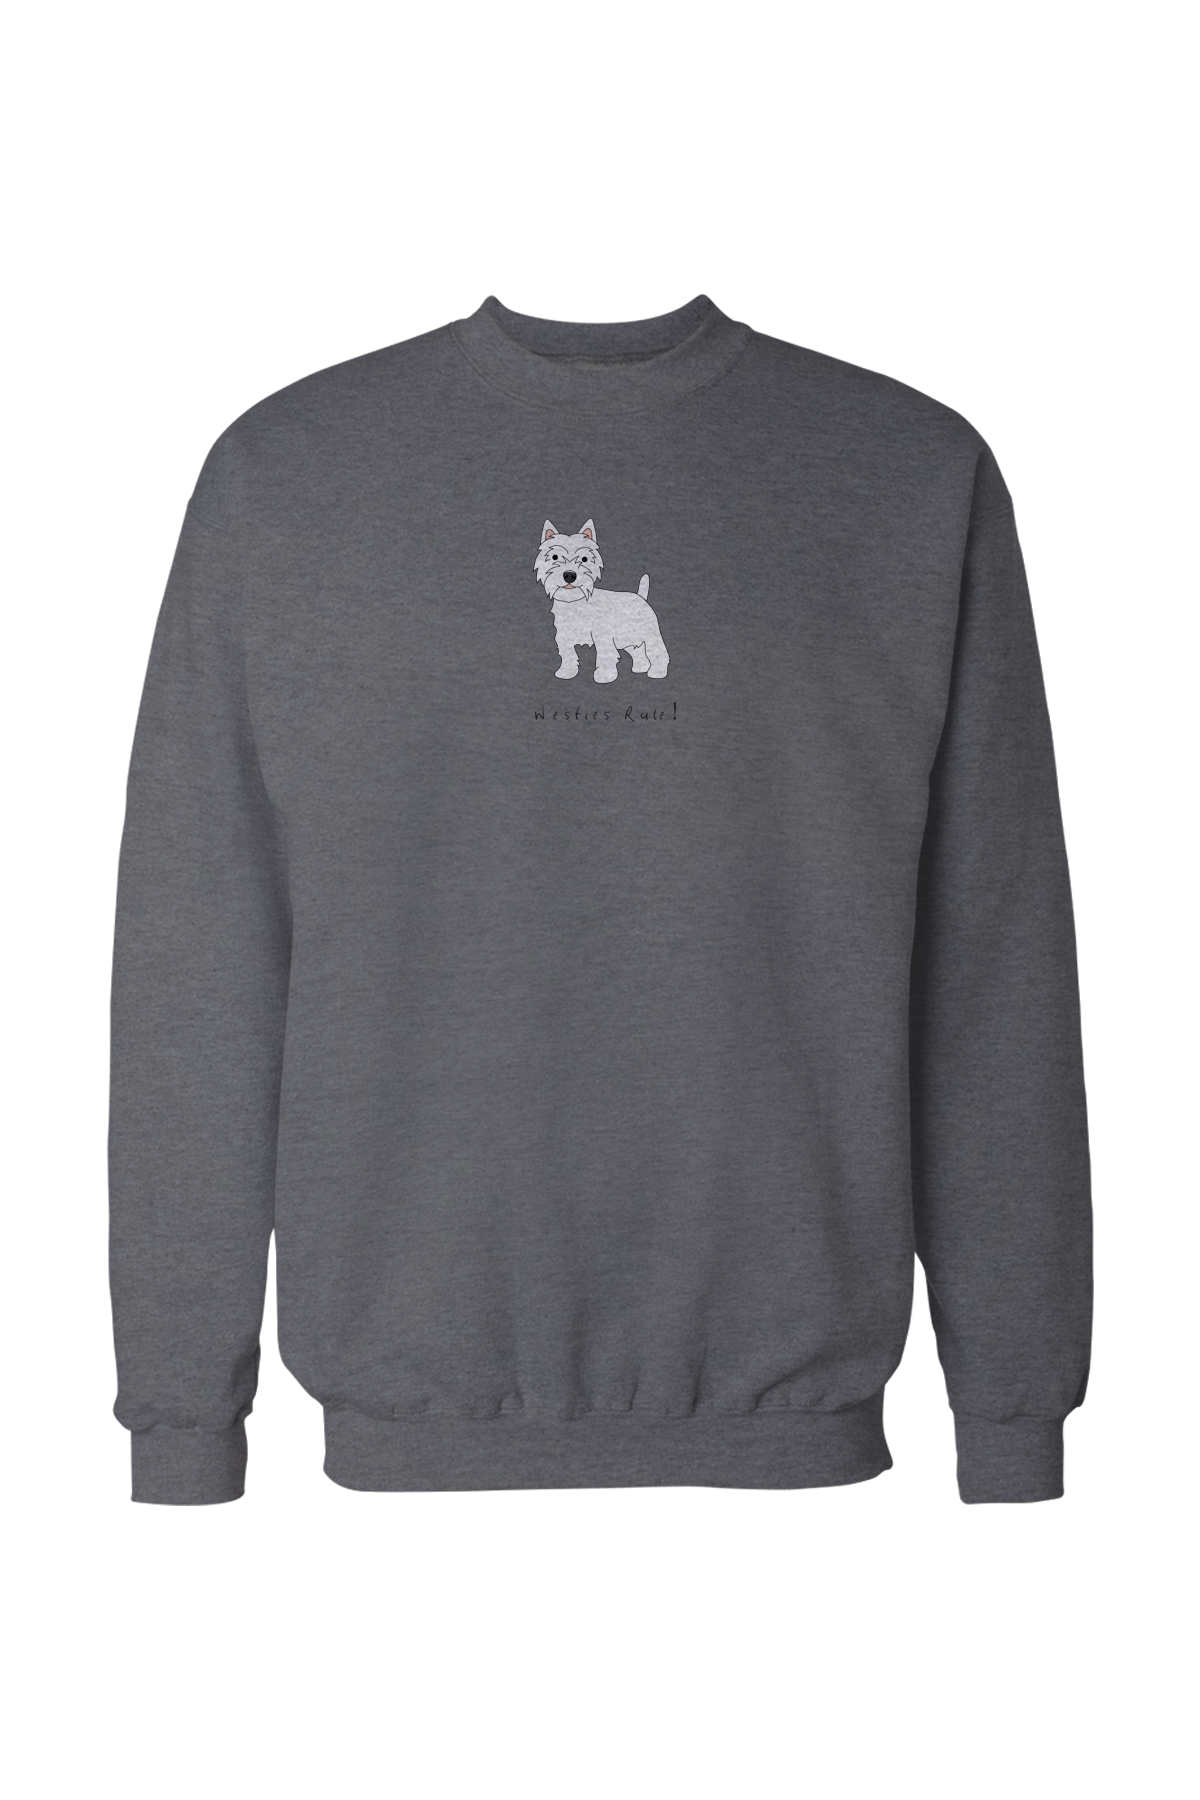 Mens Drop Shoulder Sweatshirt - Westies Rule! Grey